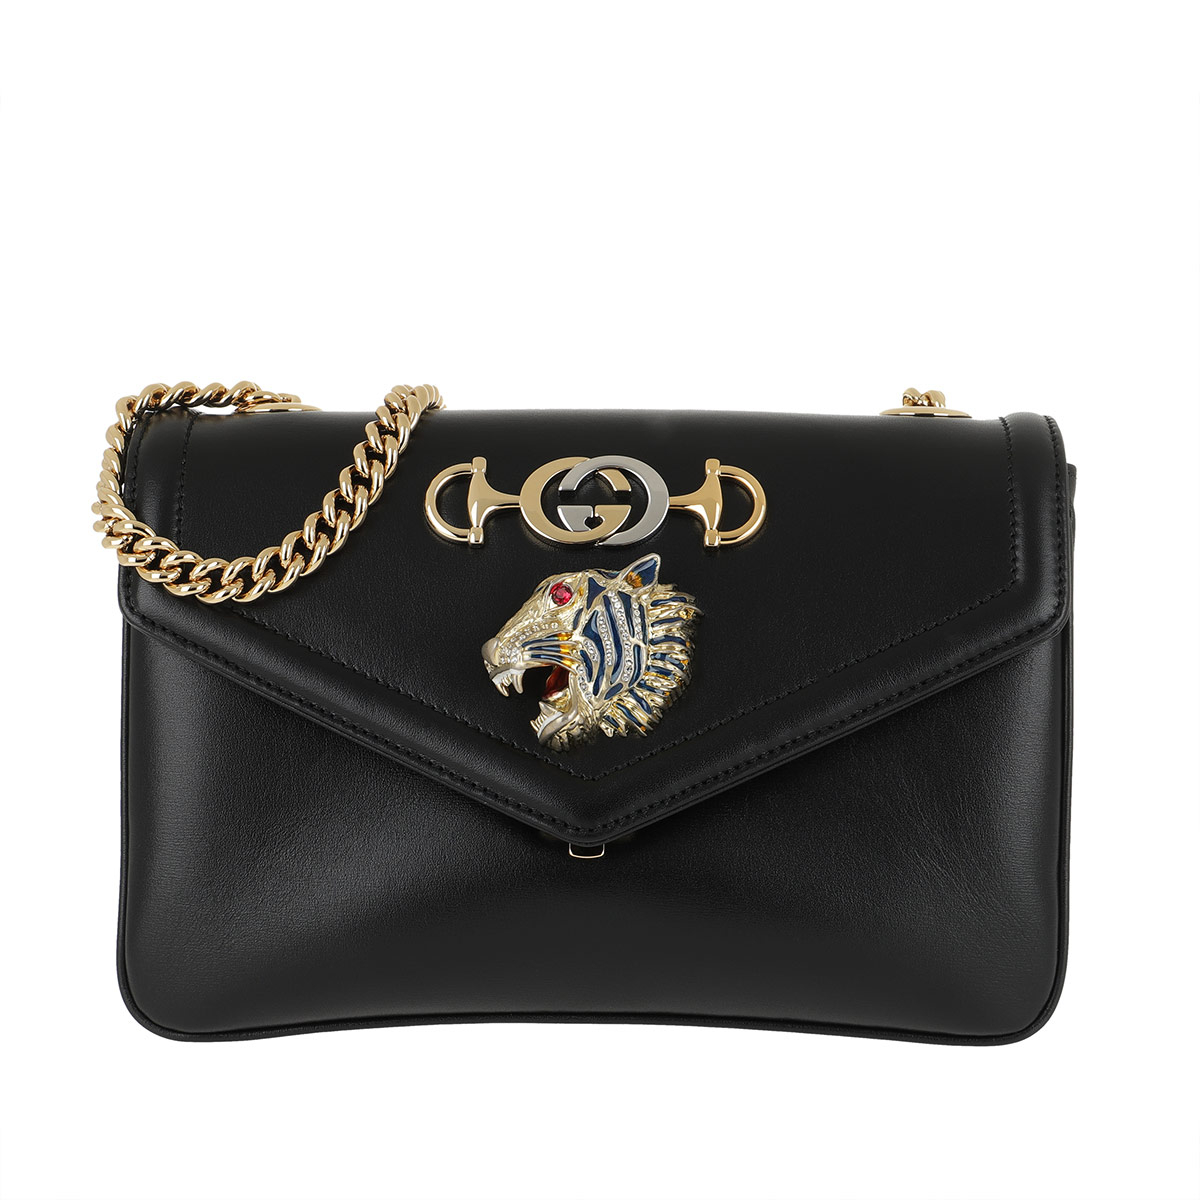 Gucci Umhängetasche - Tiger Head Shoulder Bag Leather Black - in schwarz - für Damen